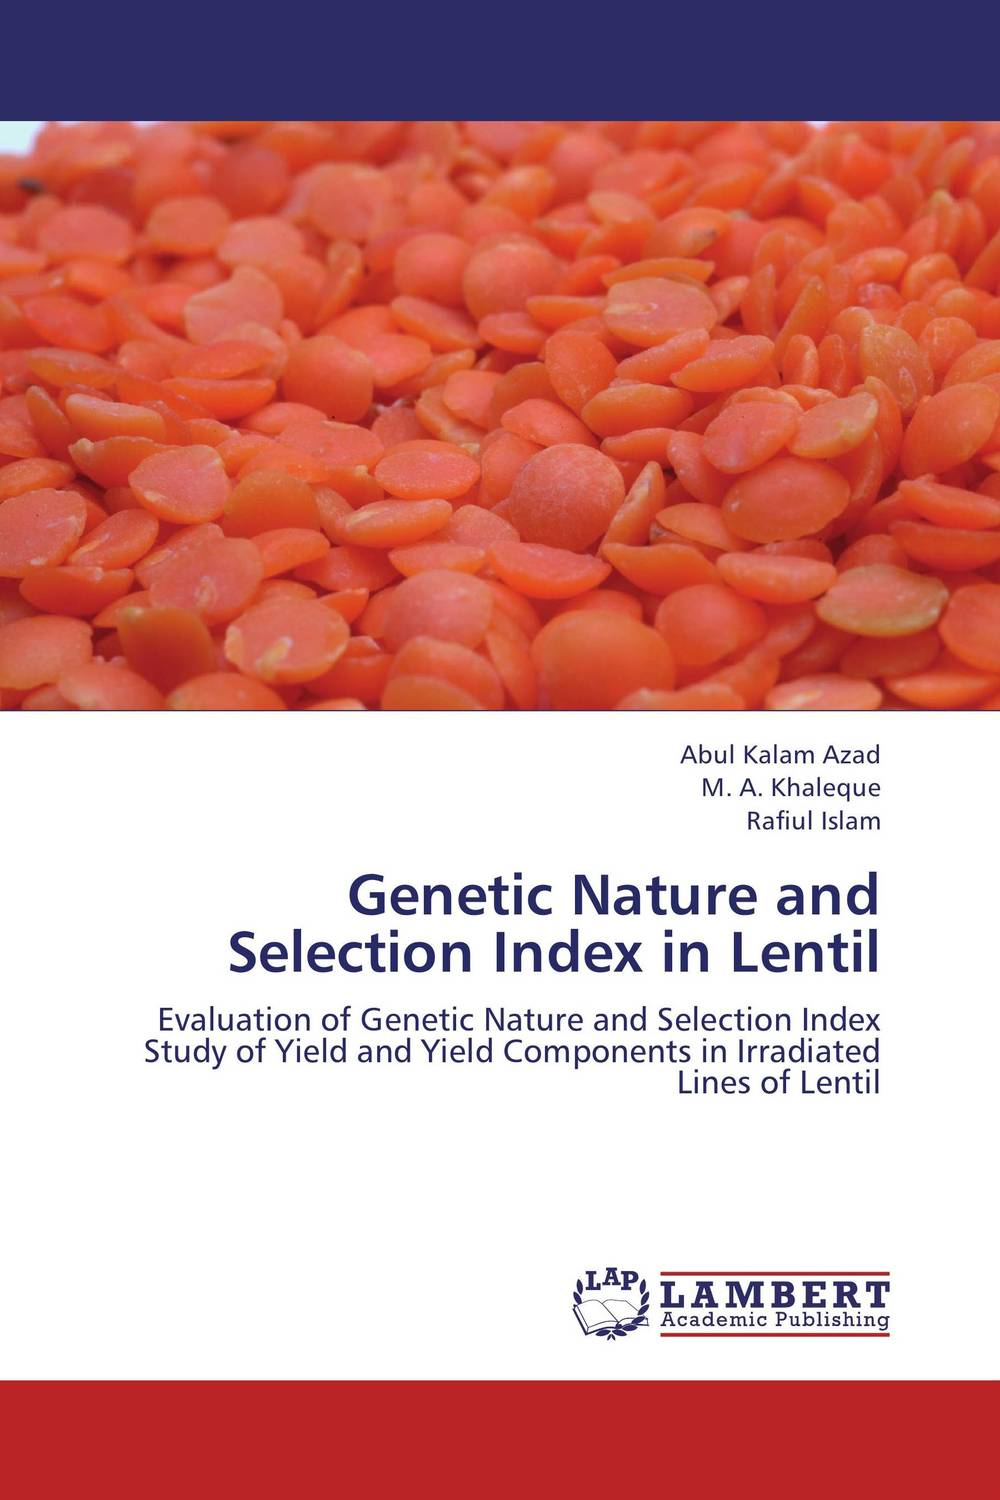 Genetic Nature and Selection Index in Lentil rainford rbн 7604 bm1 black